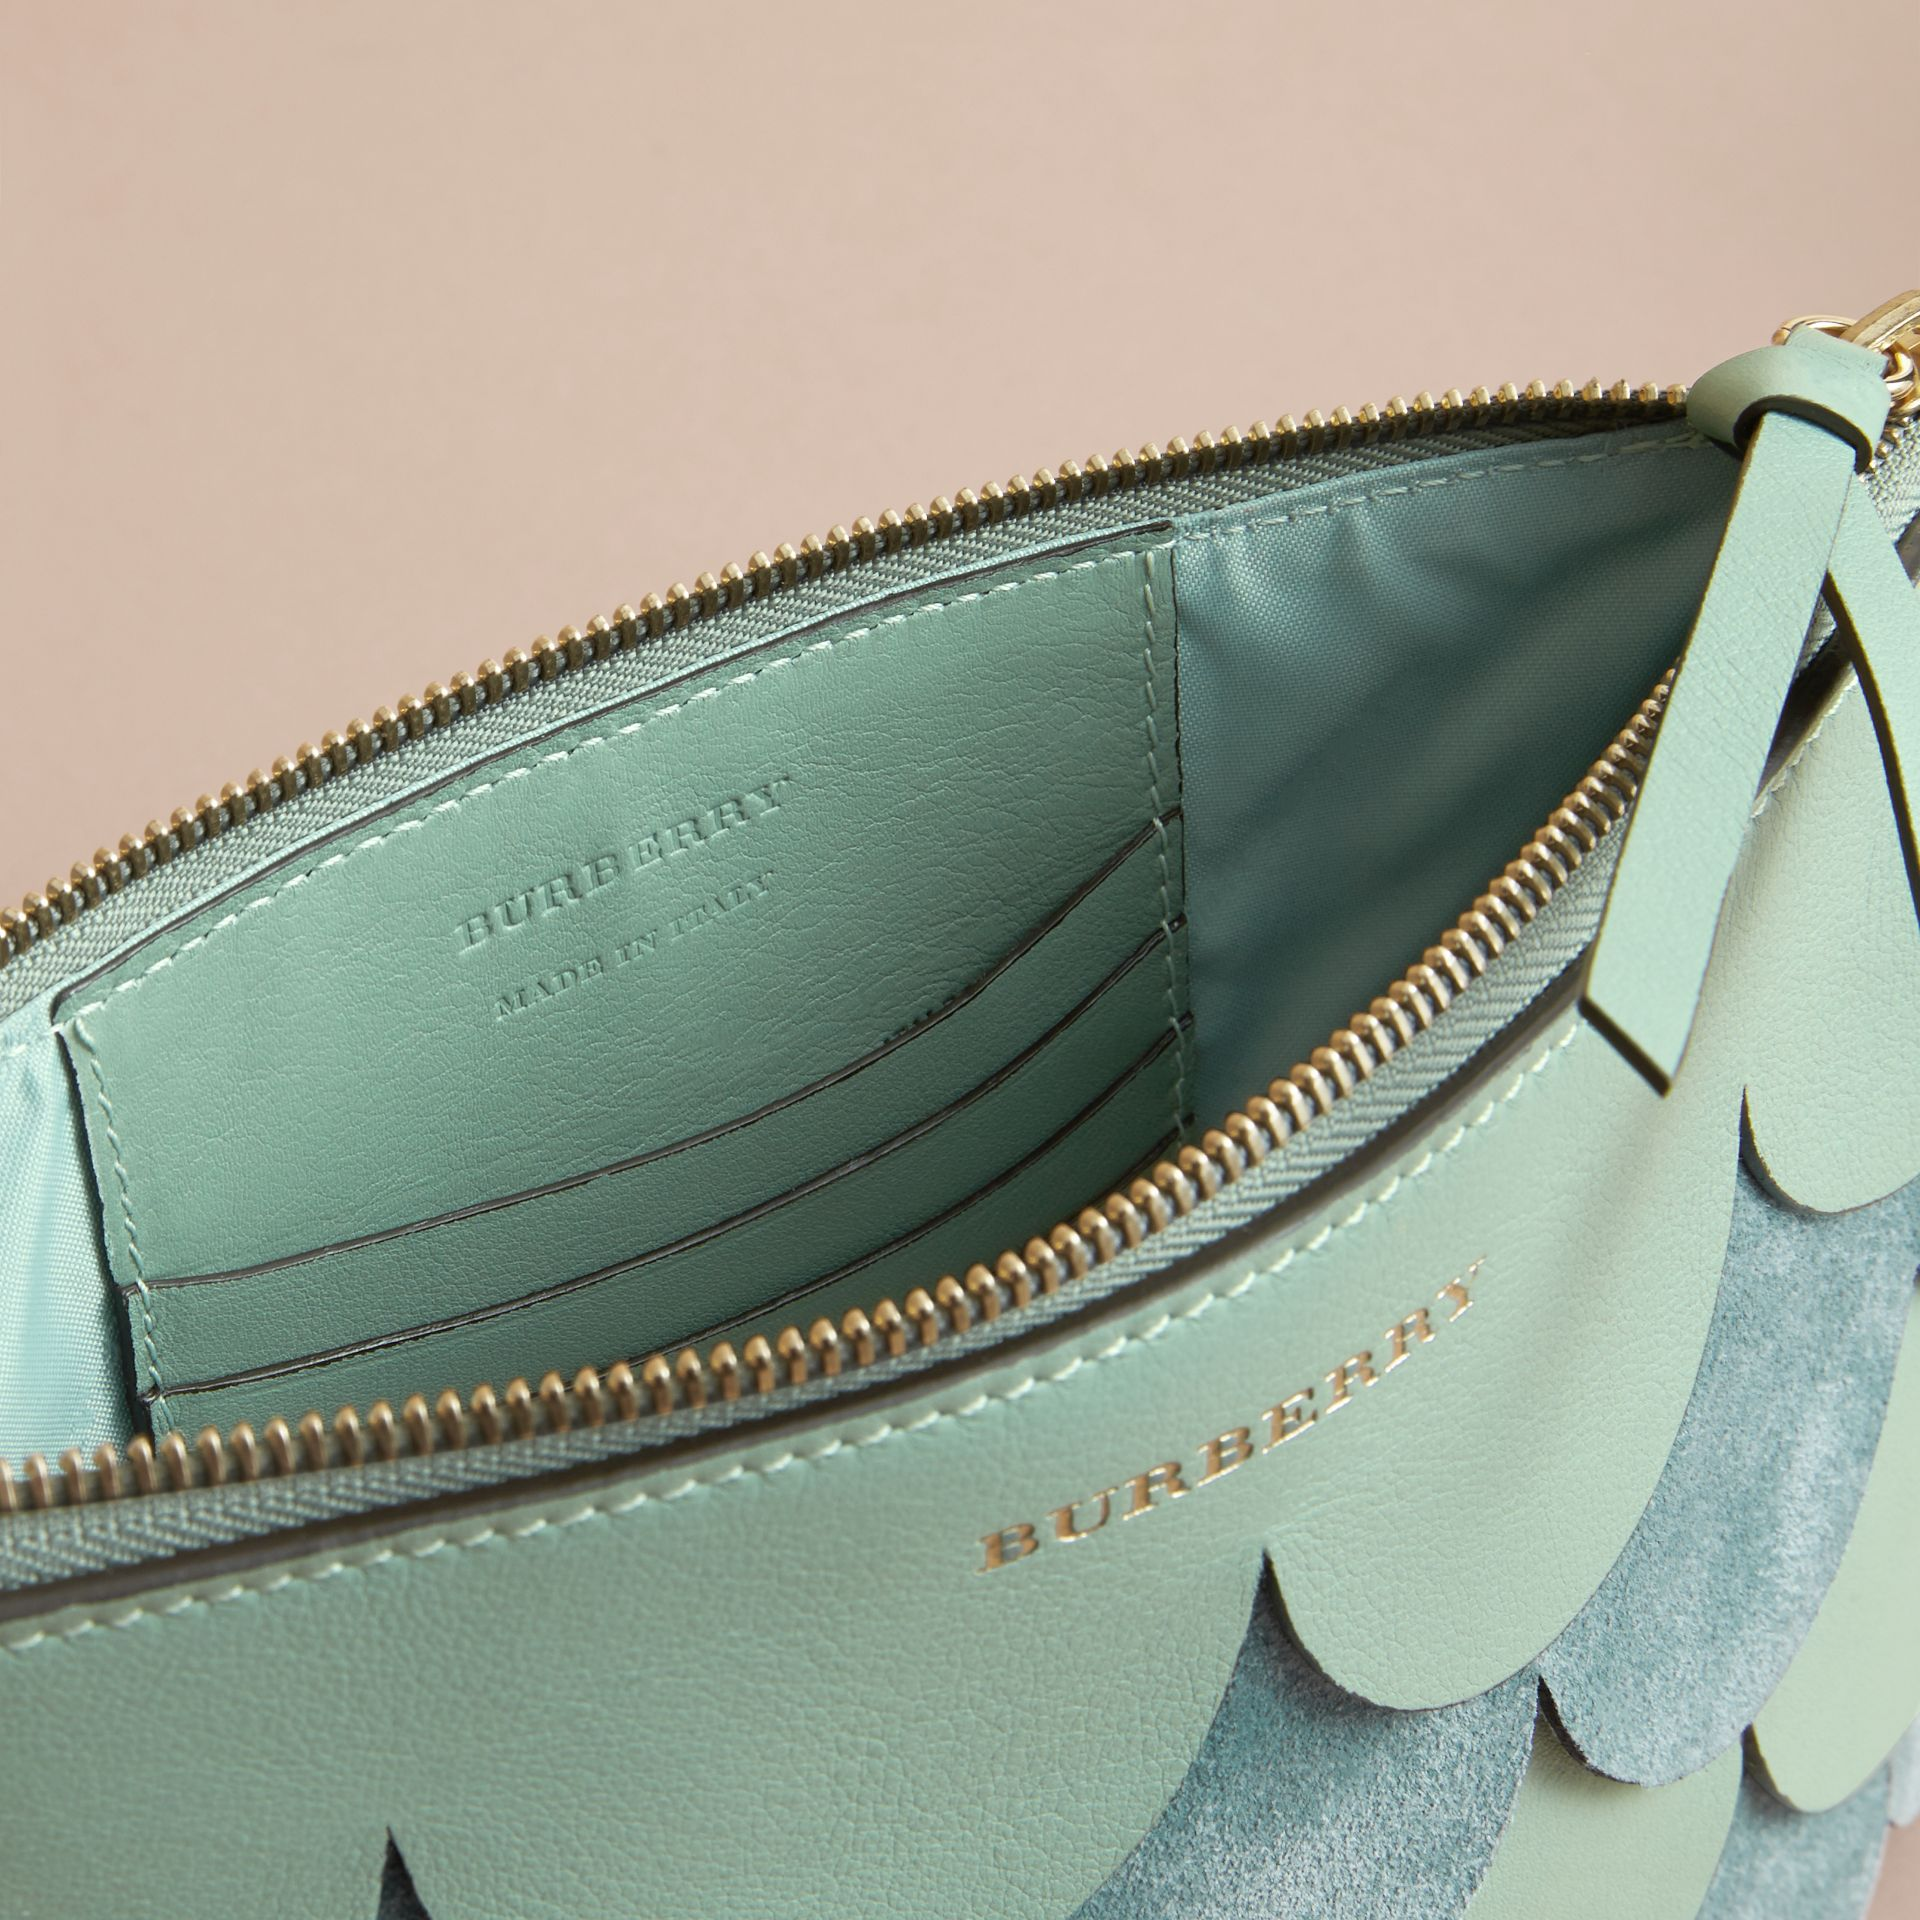 Two-tone Scalloped Leather and Suede Clutch Bag in Celadon Green - Women | Burberry - gallery image 6